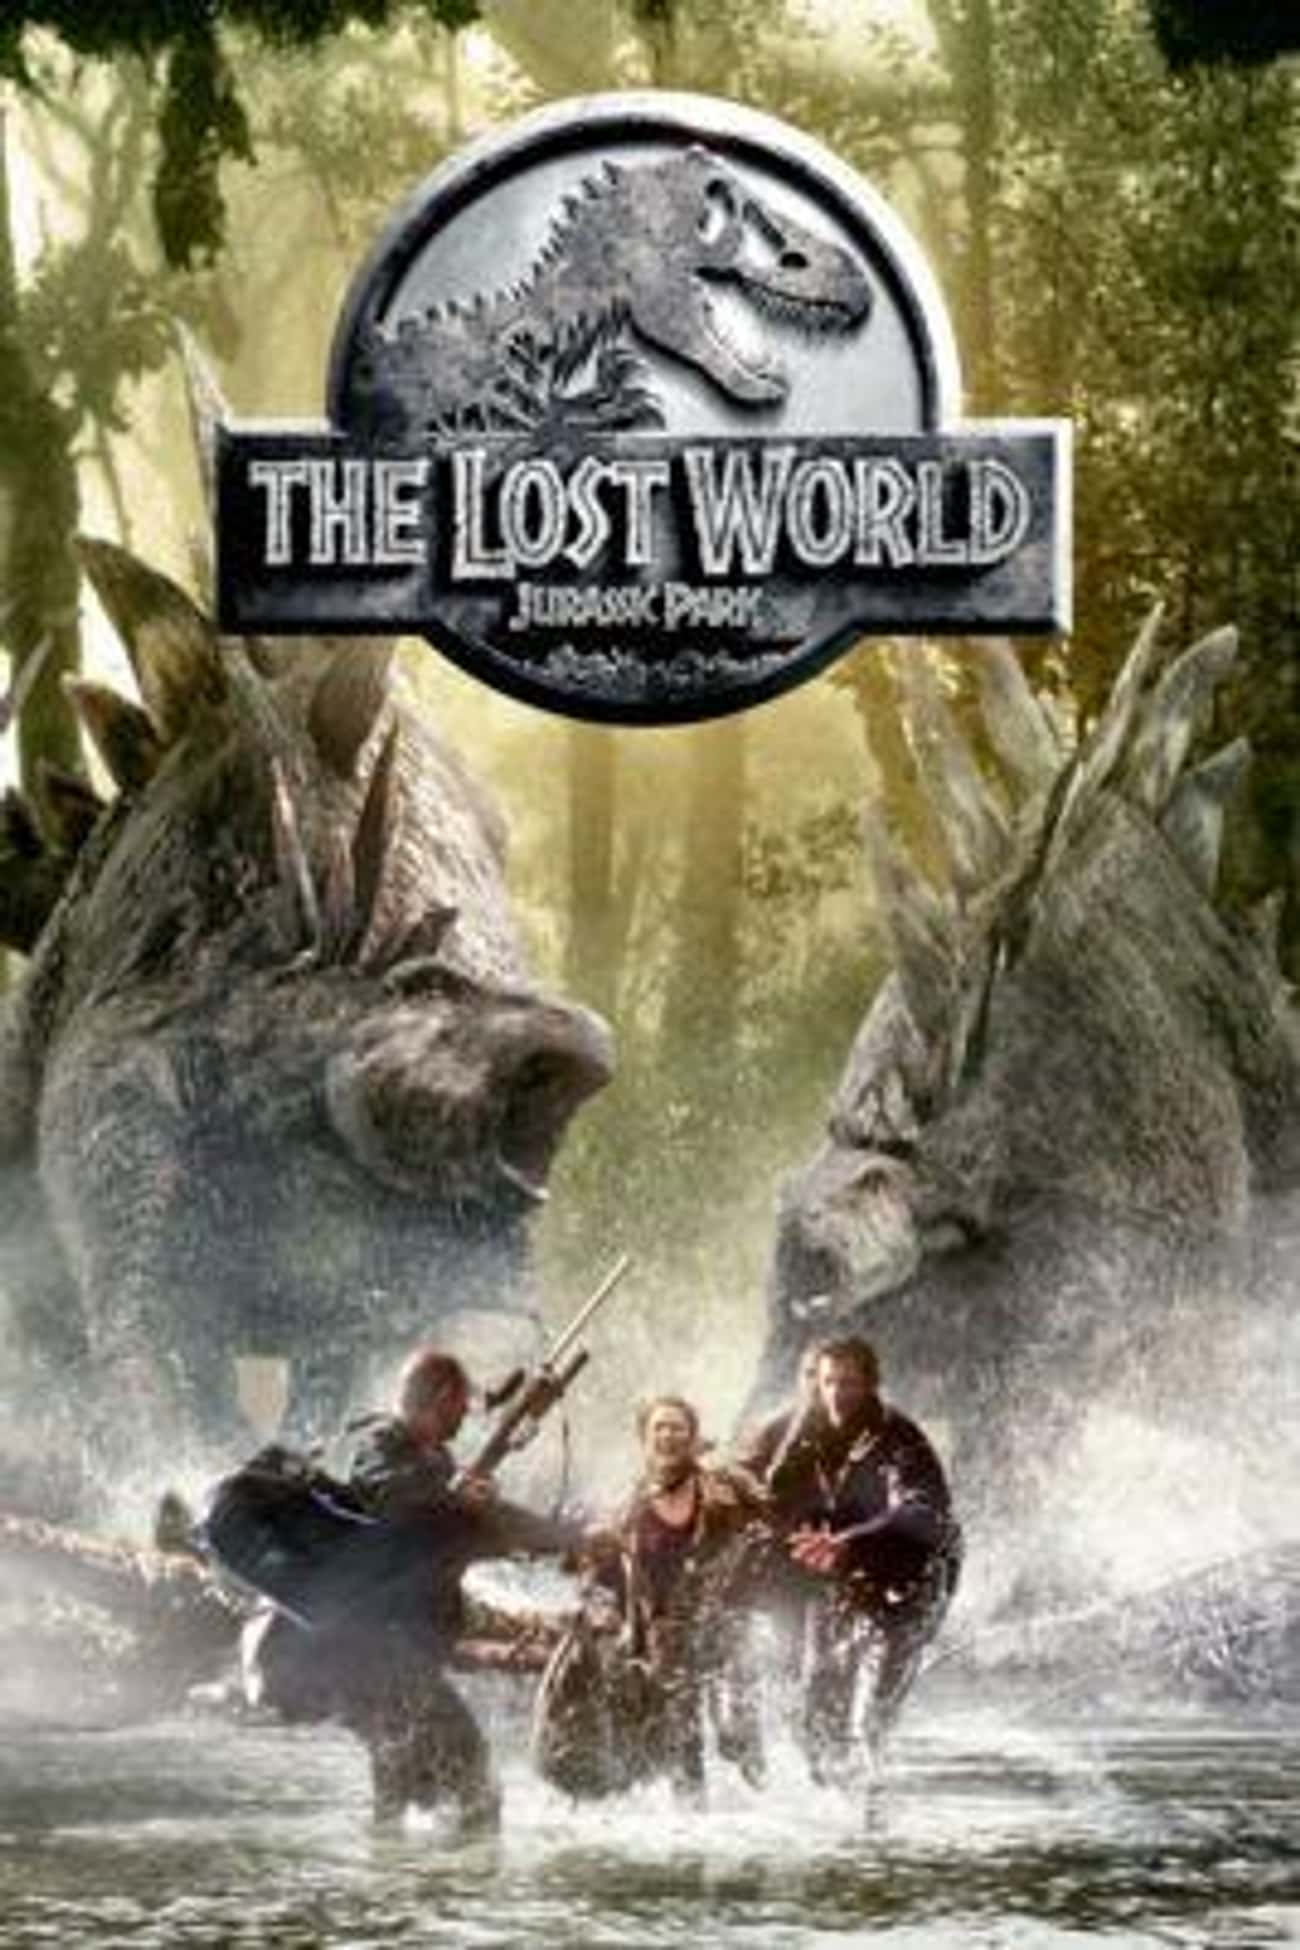 The Lost World: Jurassic Park is listed (or ranked) 3 on the list The Best Movies In The 'Jurassic Park' Franchise